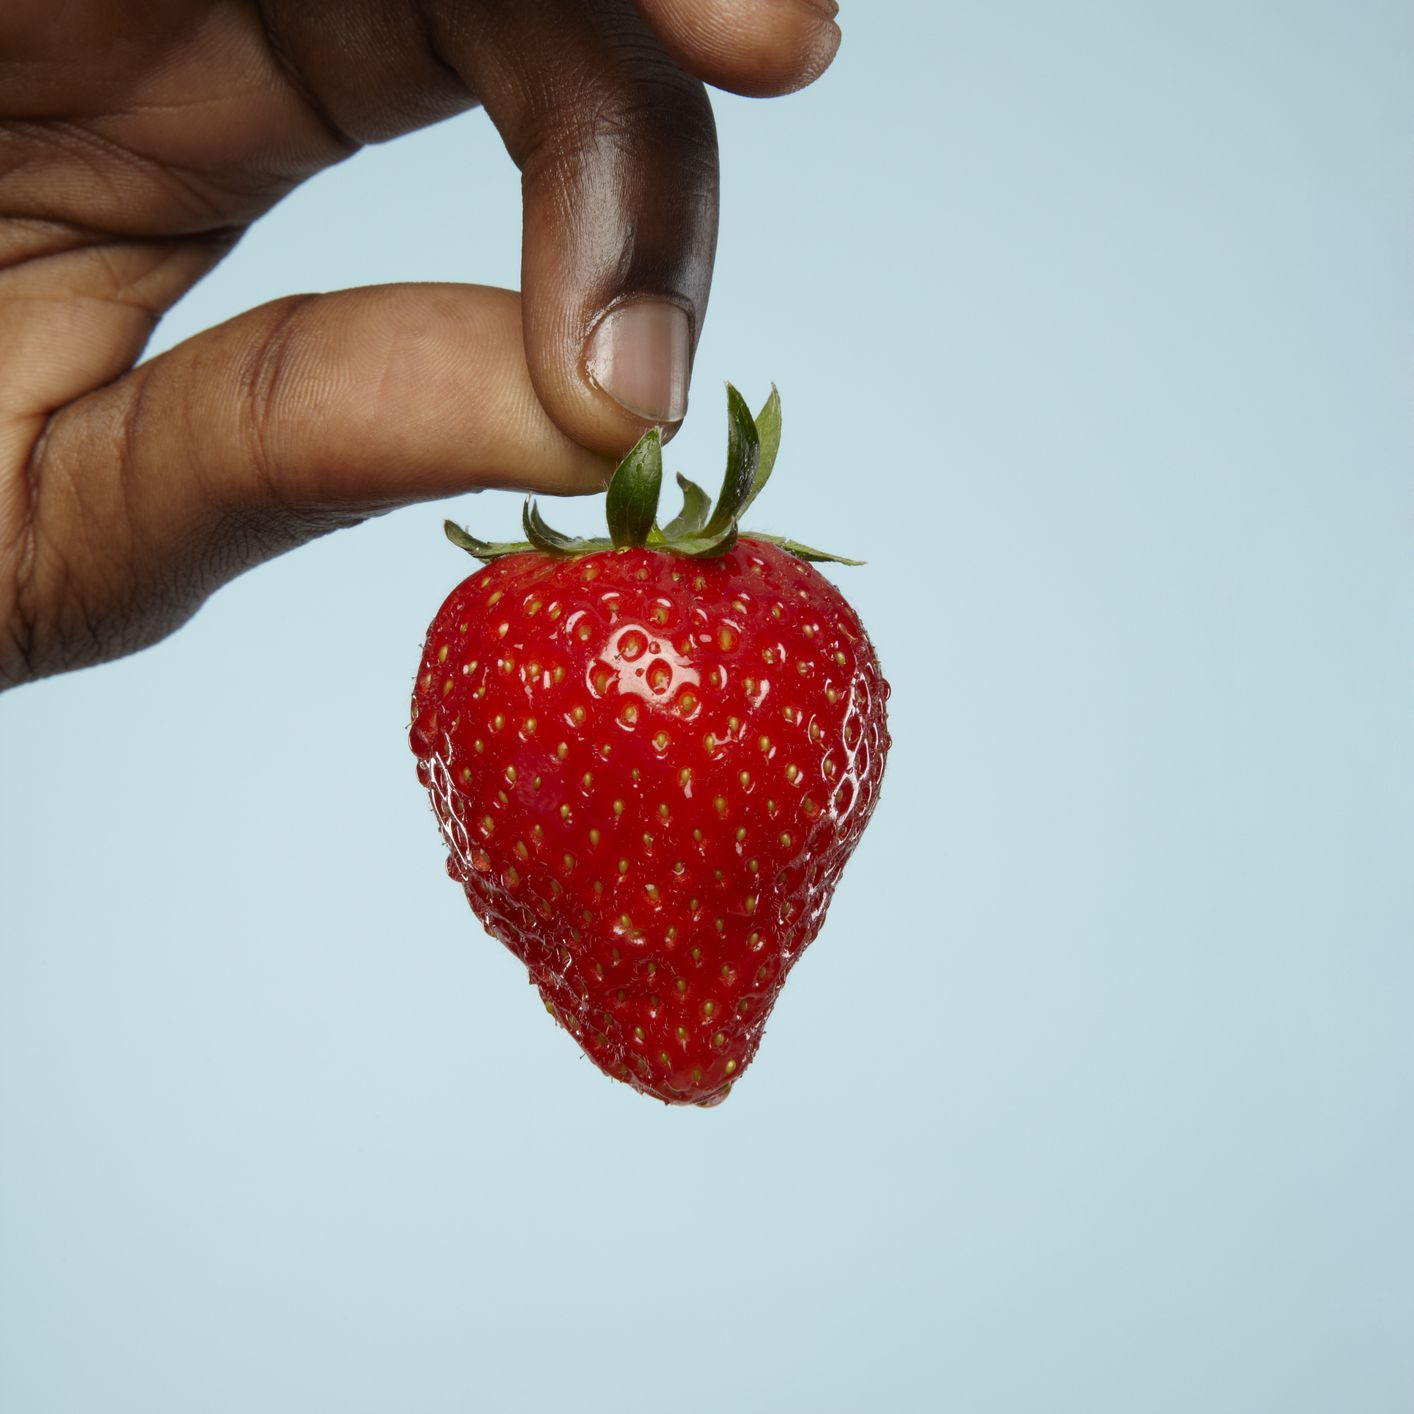 closeup of strawberry in fingers